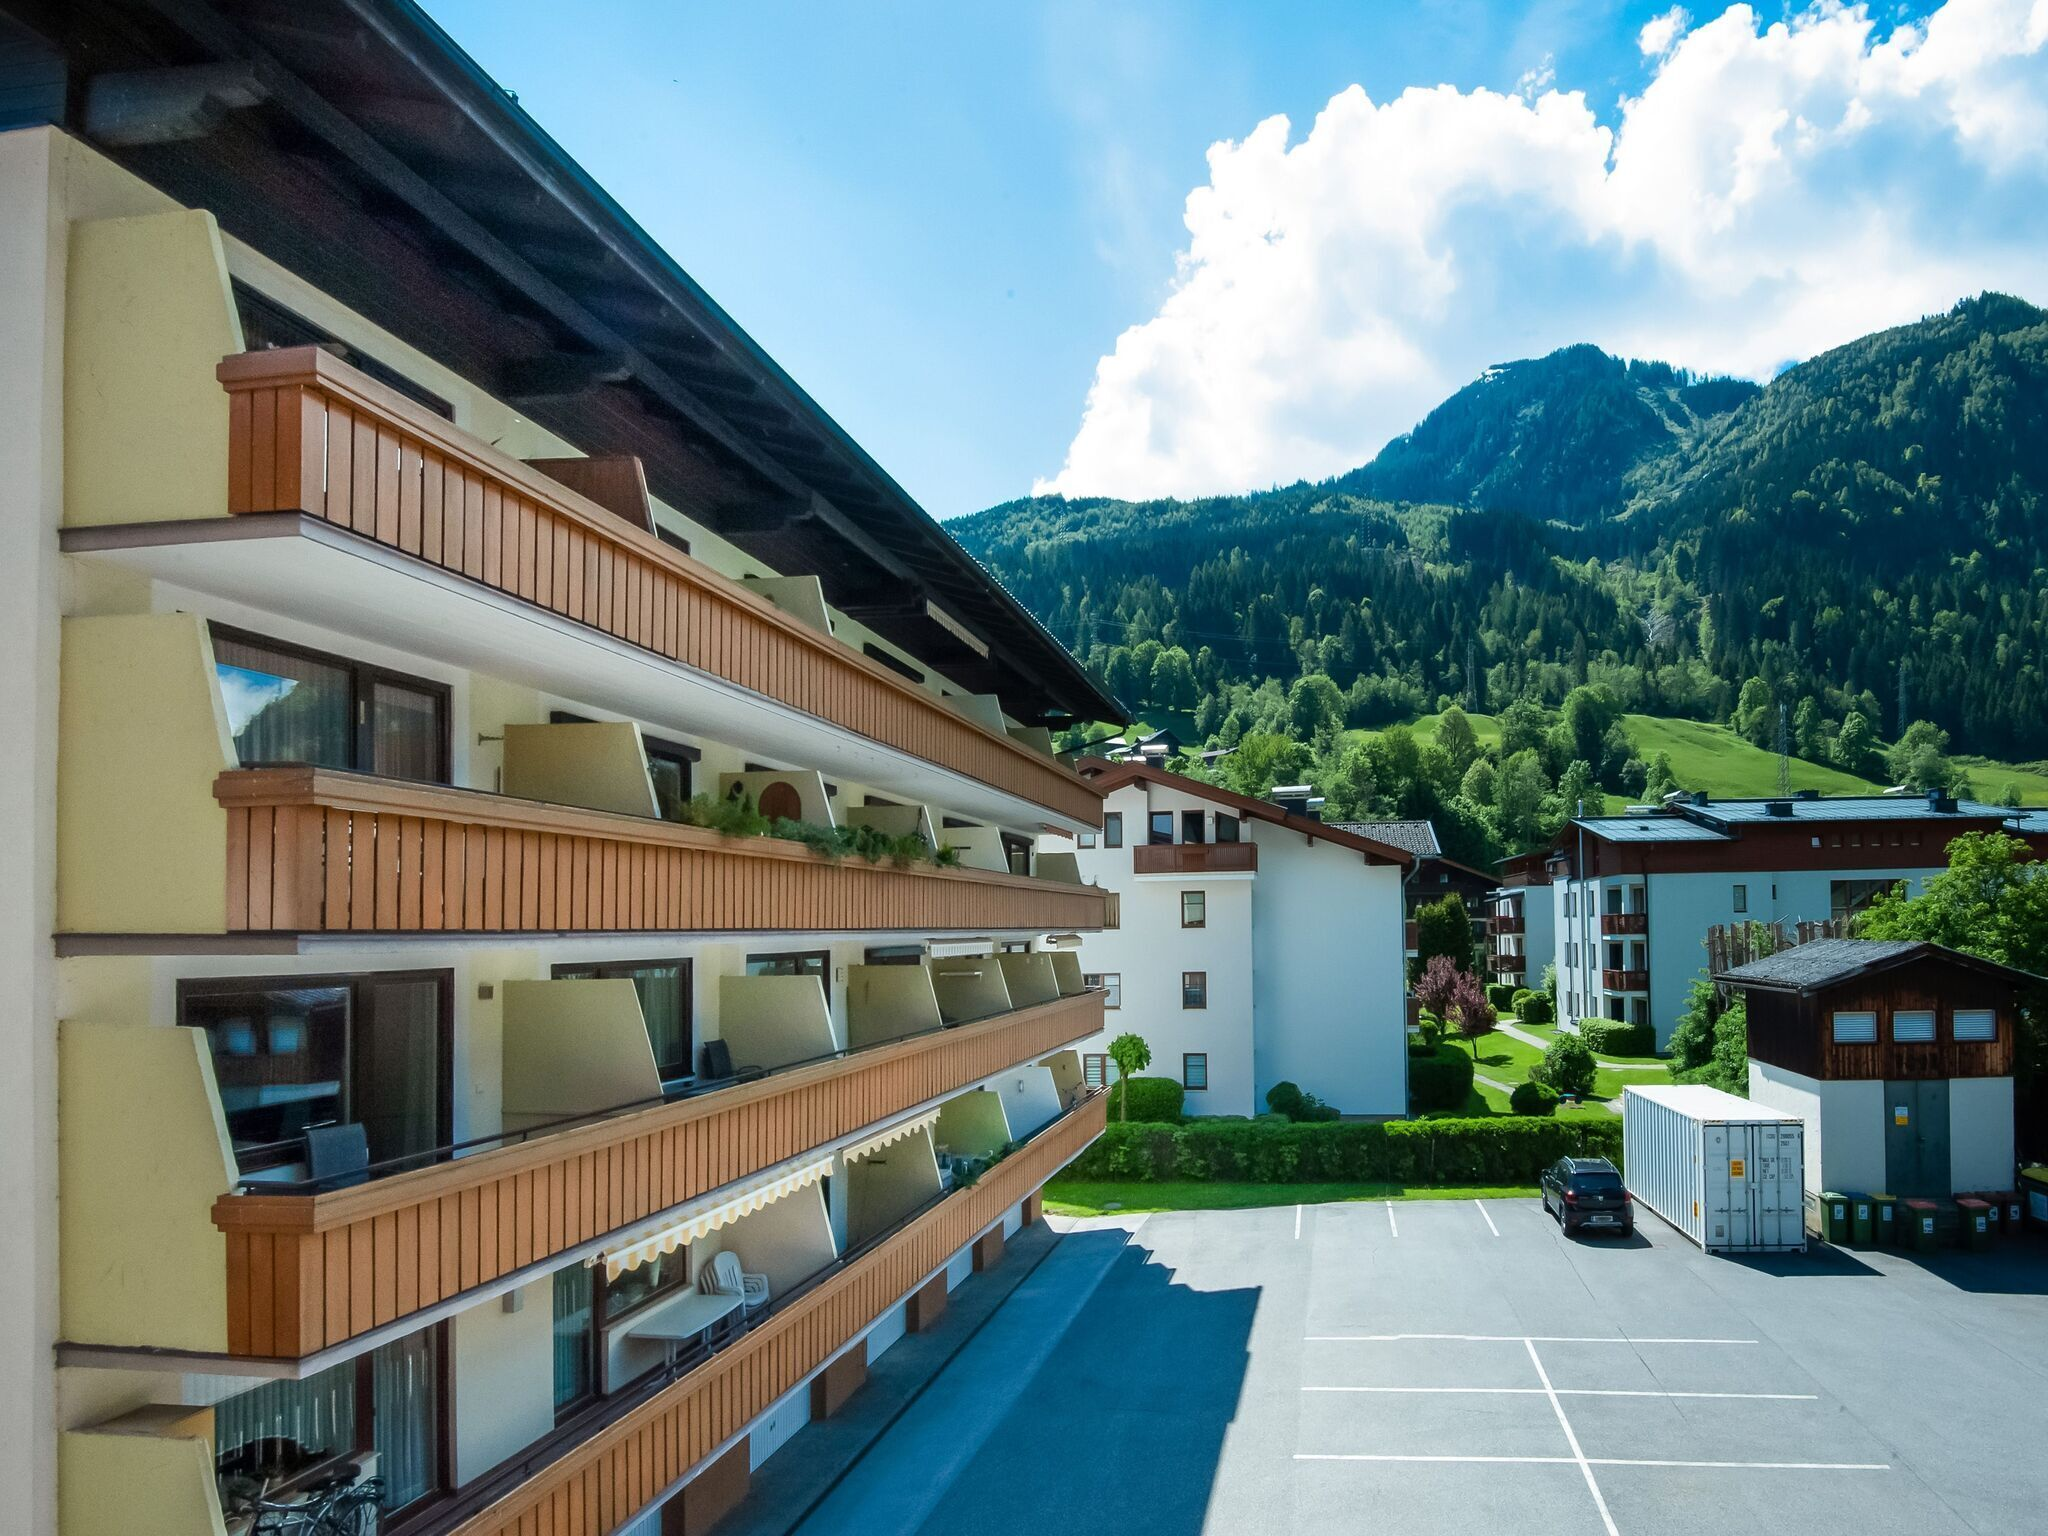 Mountain-view Apartment In Kaprun With Balcony